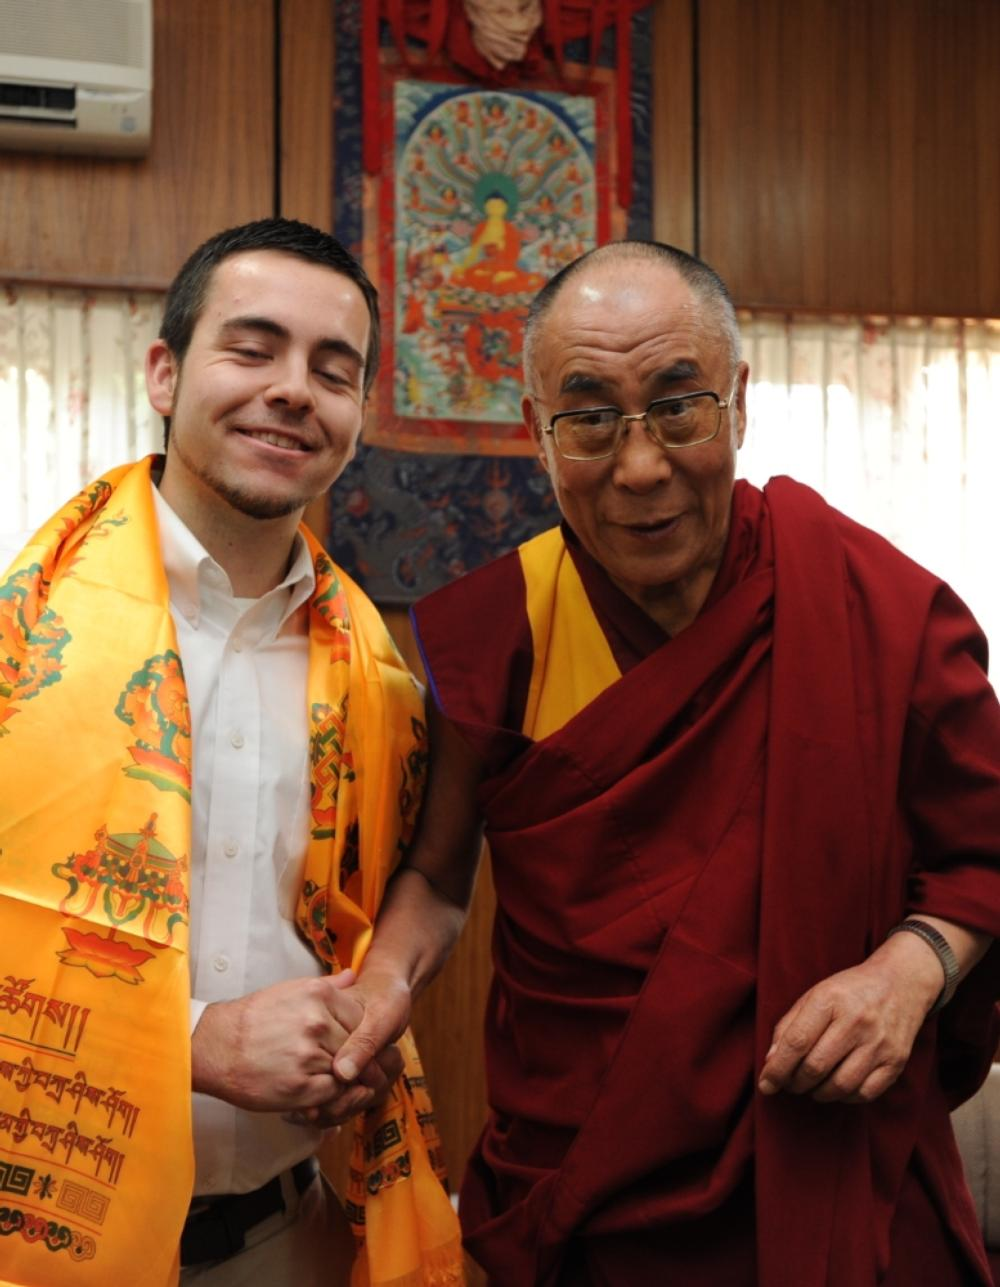 Guy shaking HHDL's hand